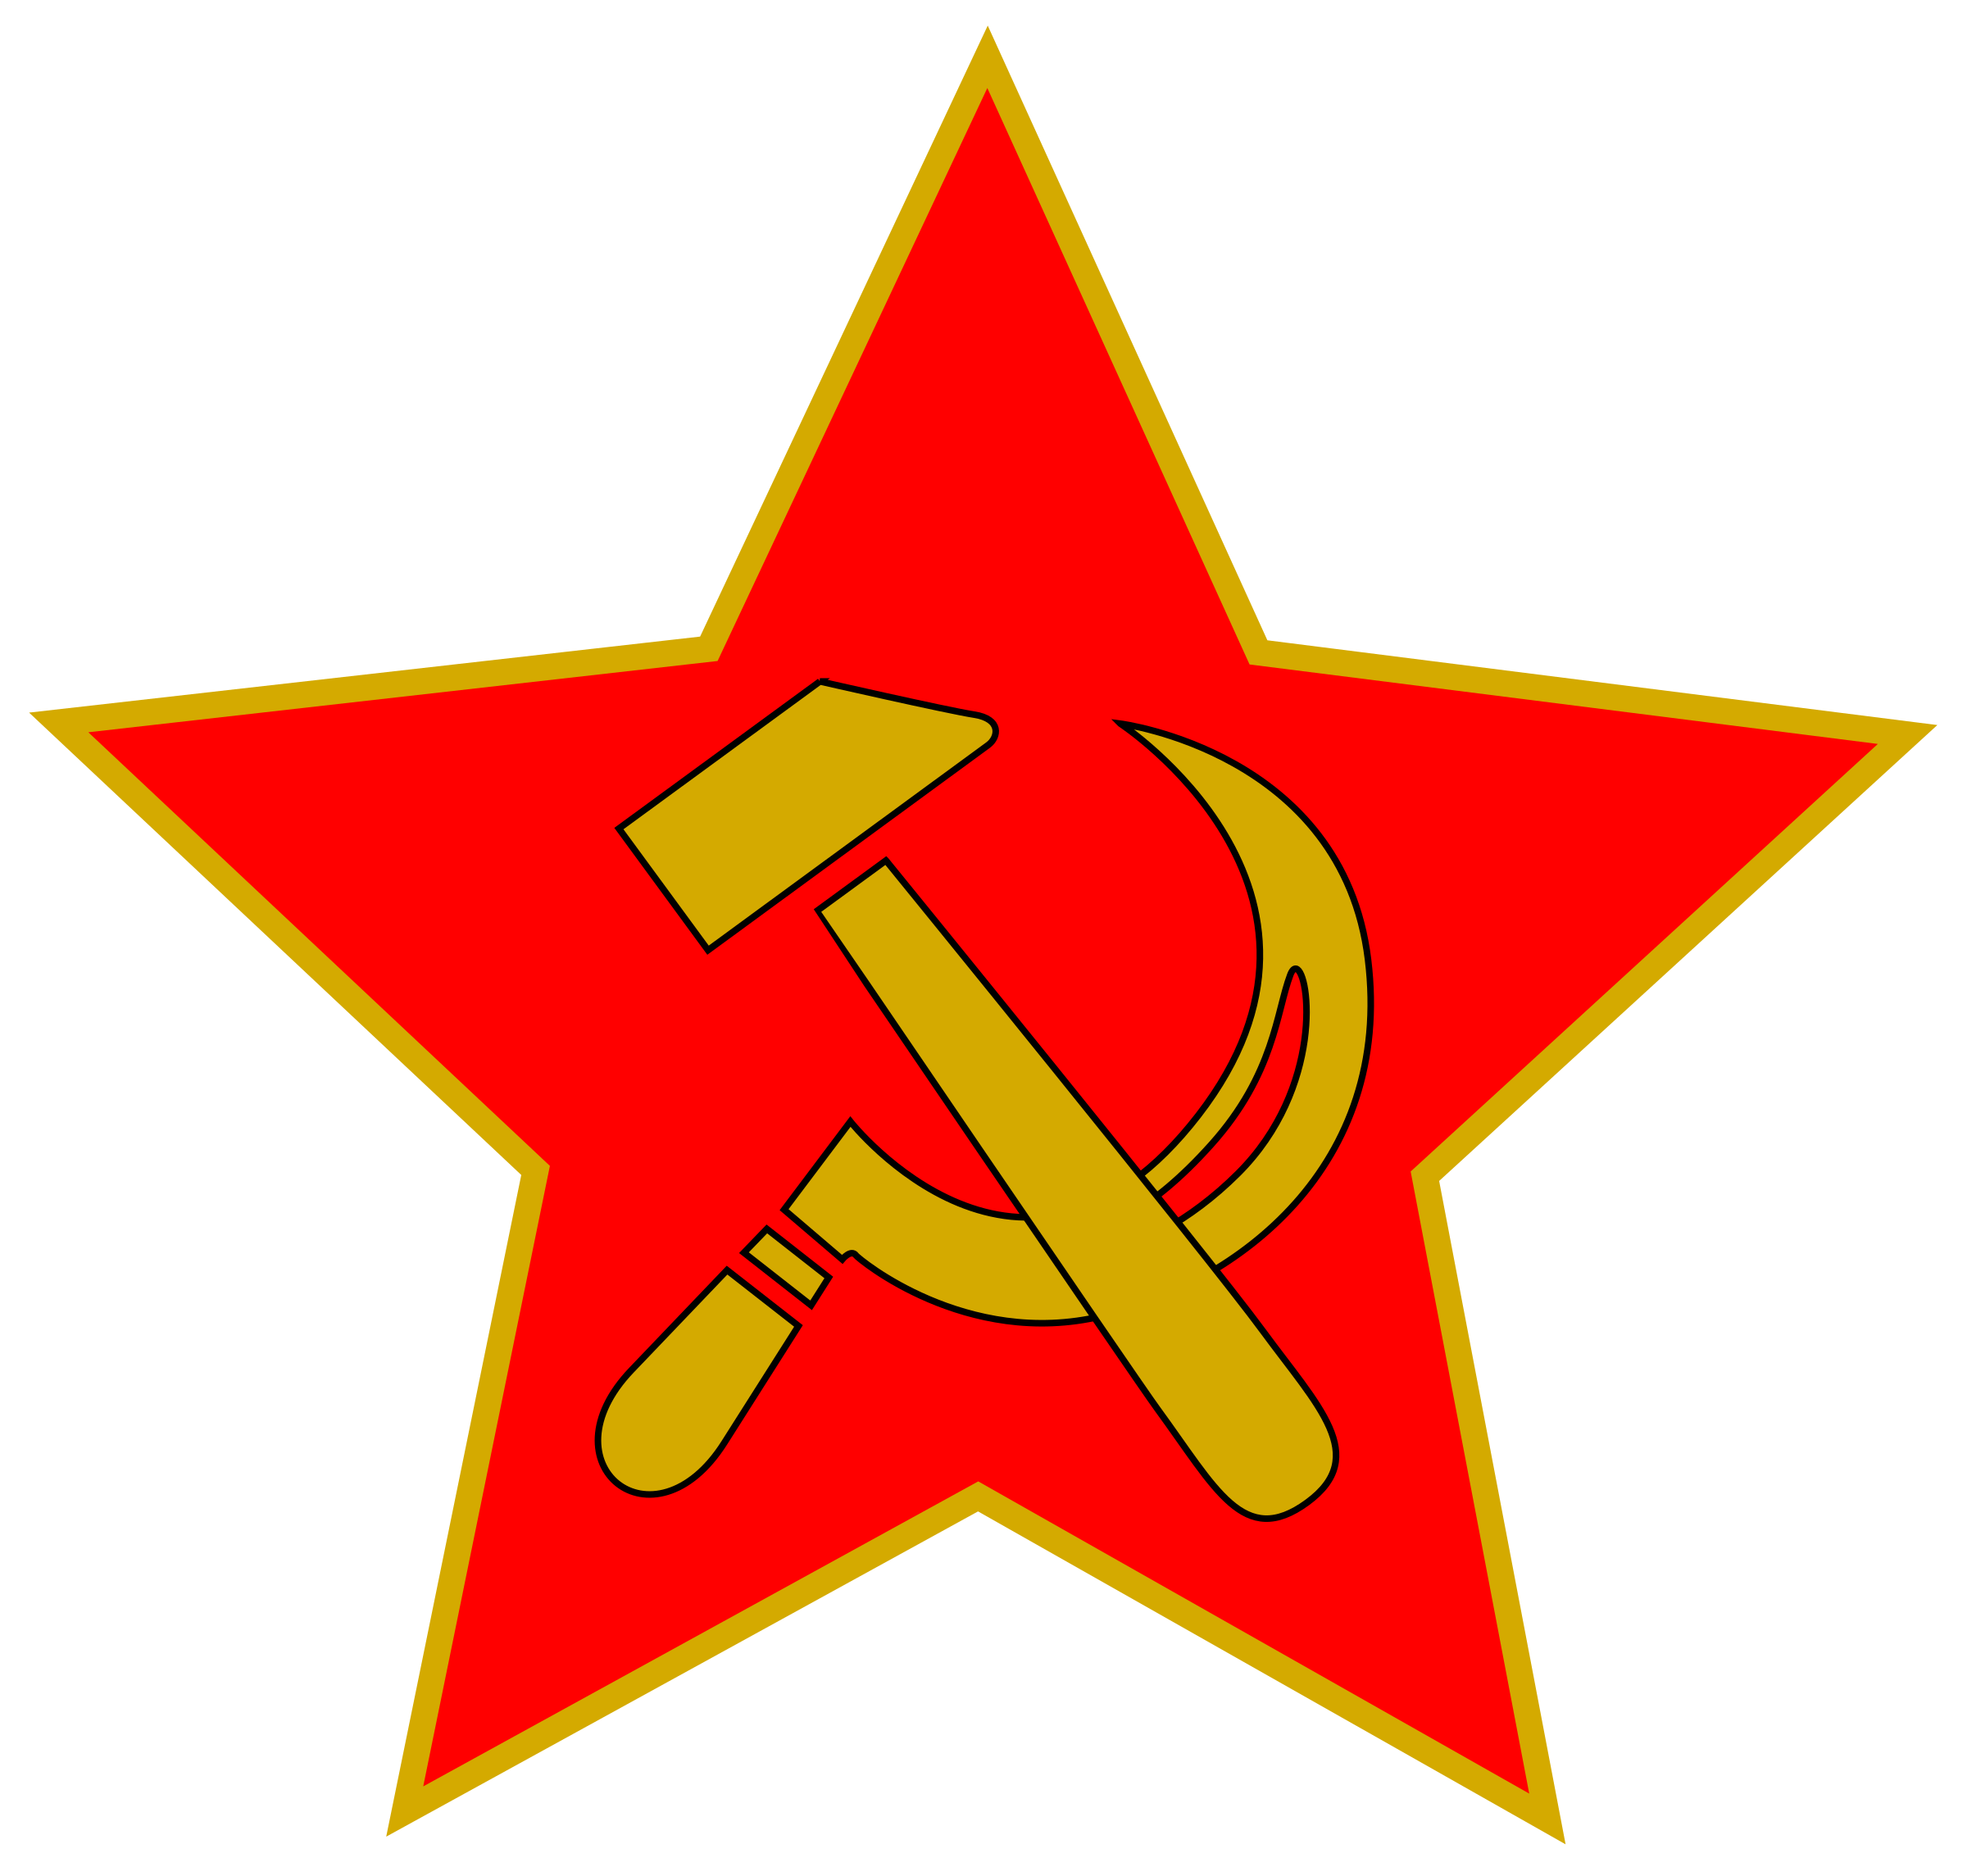 And in star big. Clipart hammer sickle